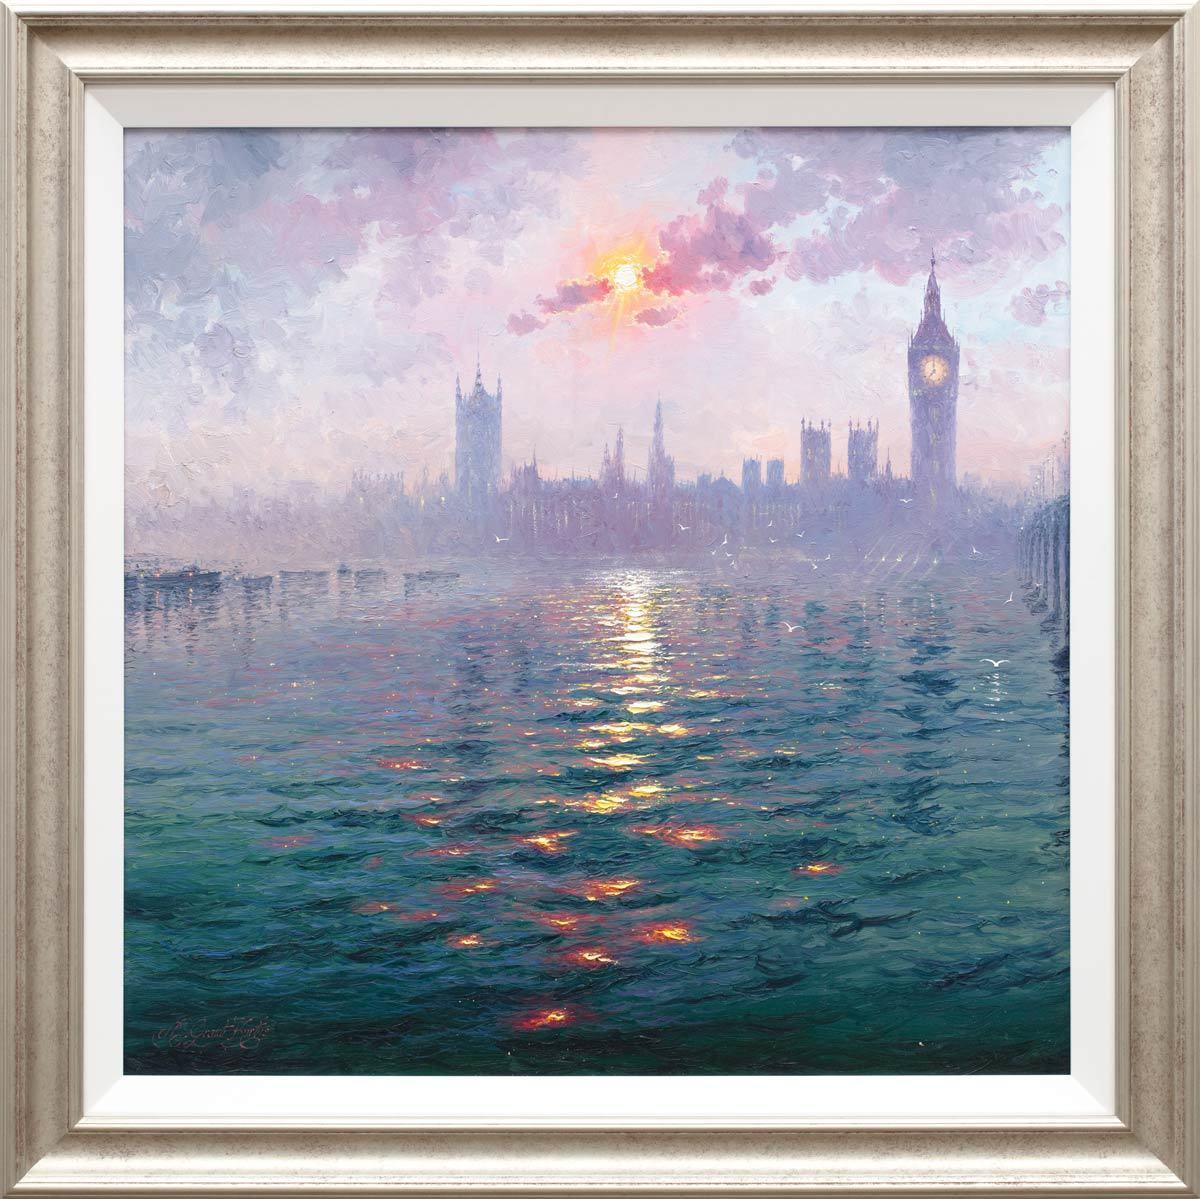 The Sunshine Sparkles through the Morning Haze - Original Andrew Grant Kurtis Loose